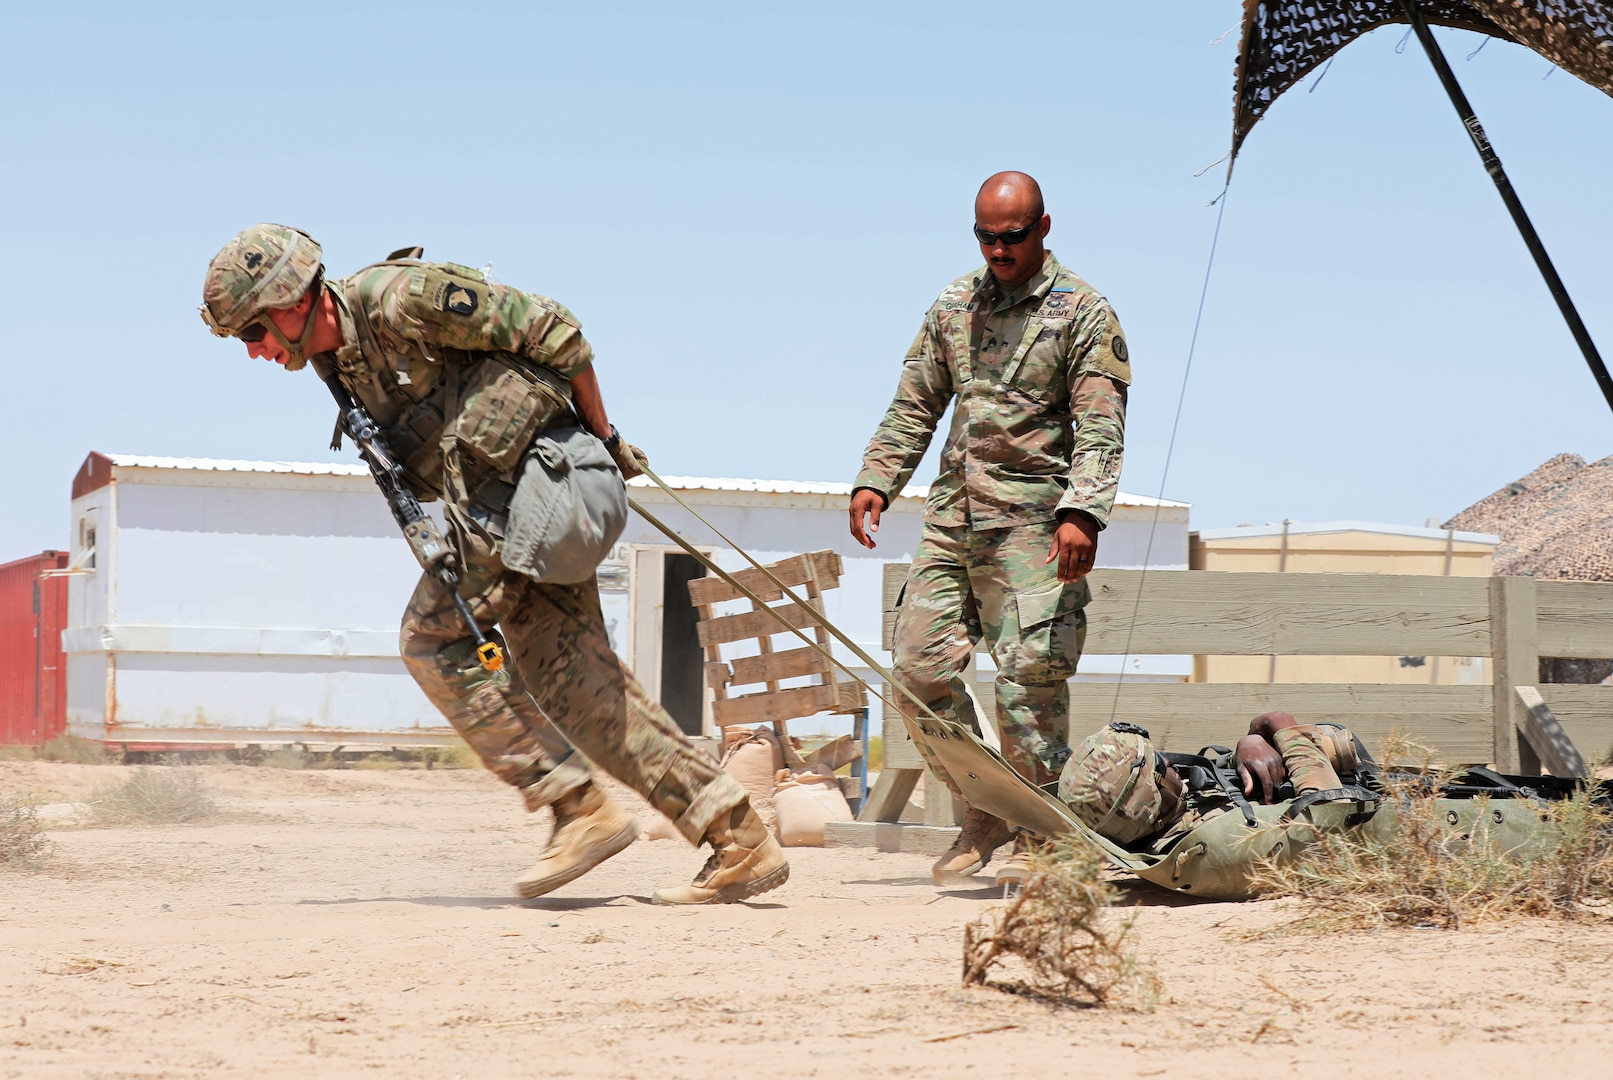 Staff Sgt. David Schwigen, an infantry Soldier with 1st Battalion, 327th Infantry Regiment, 1st Brigade Combat Team, 101st Infantry Division, moves a simulated casualty 50 meters to a casualty collection point during Expert Infantryman Badge testing at Camp Buehring, Kuwait on Thursday, May 30, 2019. Infantry Soldiers throughout the U.S. Army Central area of operations were invited to participate in EIB testing hosted by the 3rd Armored Brigade Combat Team, 4th Infantry Division.